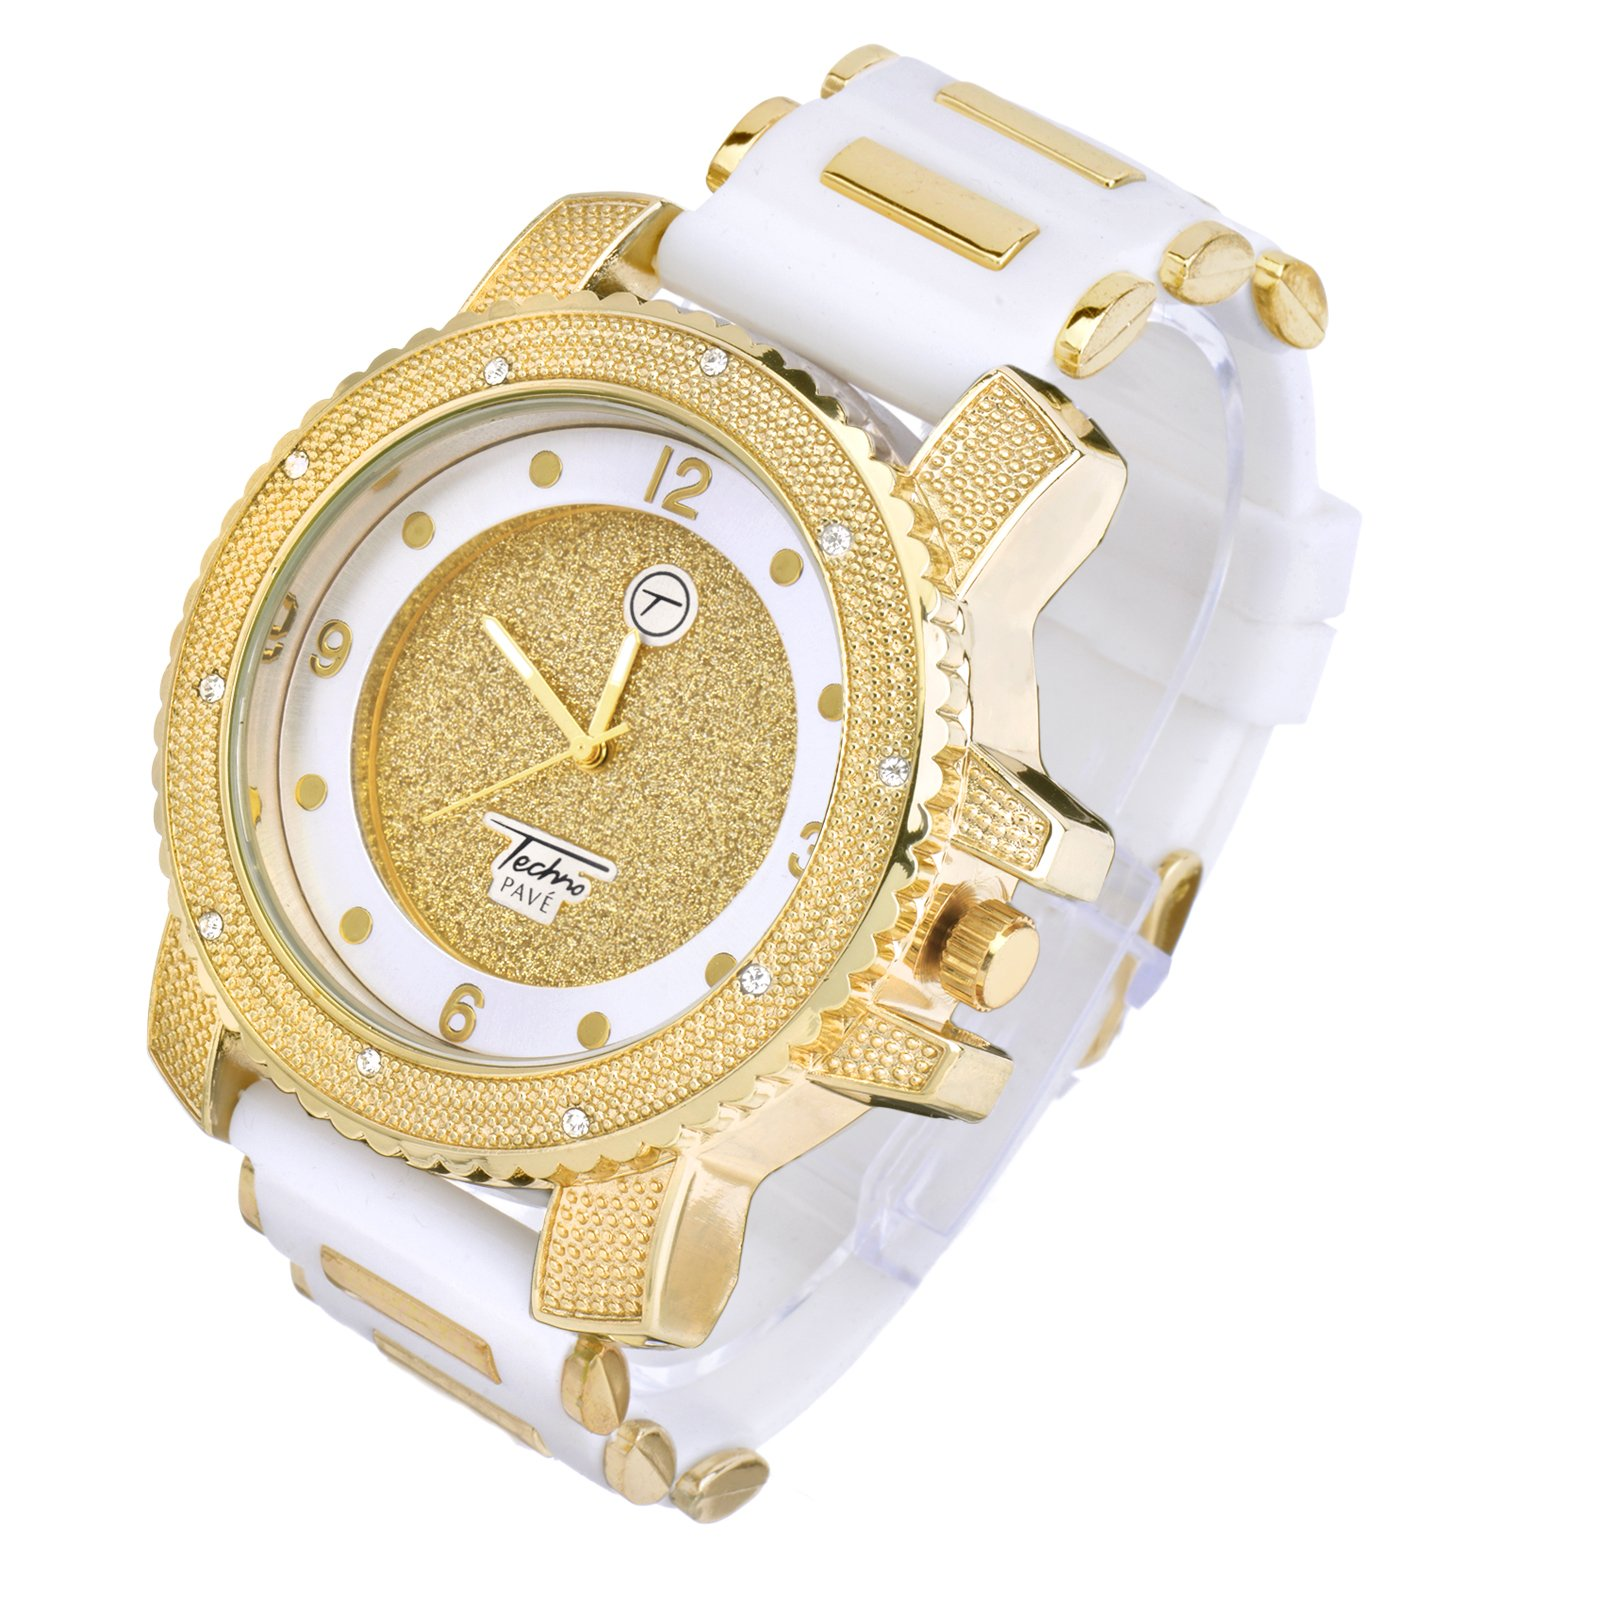 METALTREE98 Men's Fashion Hip Hop Analog Iced Out Heavy White Silicone Band Watch WR 7758 (Gold Toned) by METALTREE98 (Image #2)